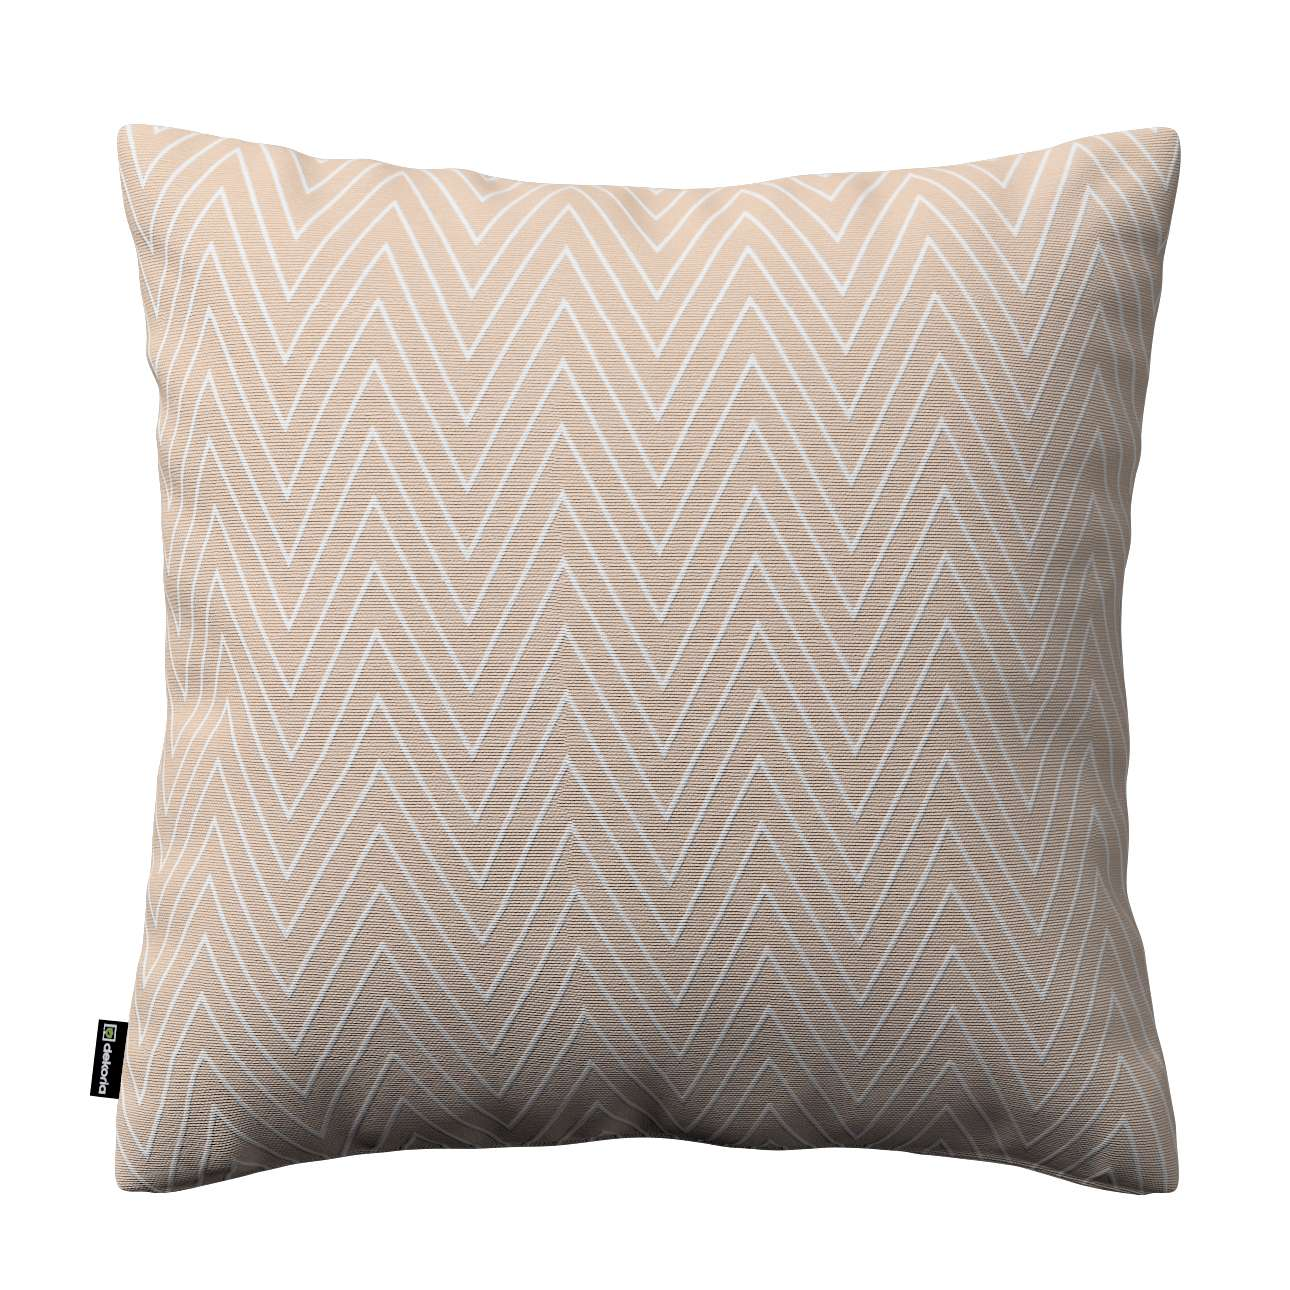 Kinga cushion cover in collection Brooklyn, fabric: 137-91